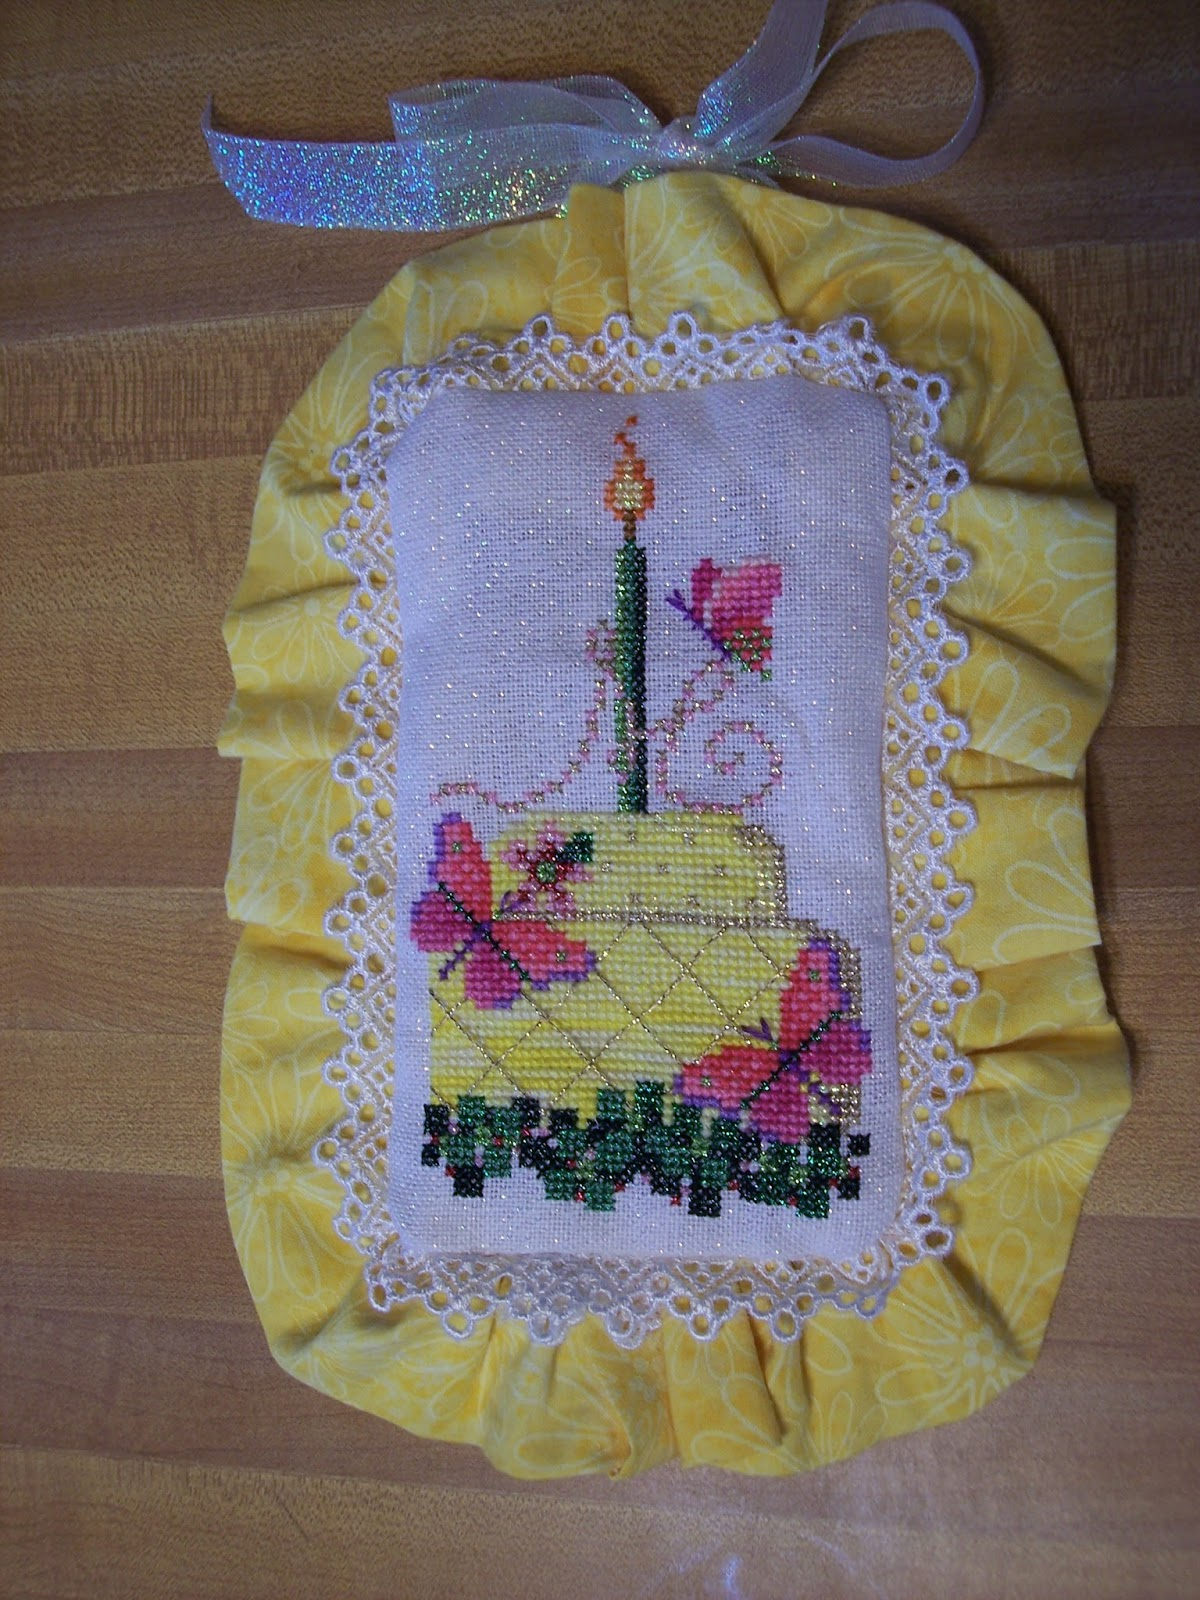 Birthday Cakes Quakers Hill ~ The happy stitcher finished works and older projects